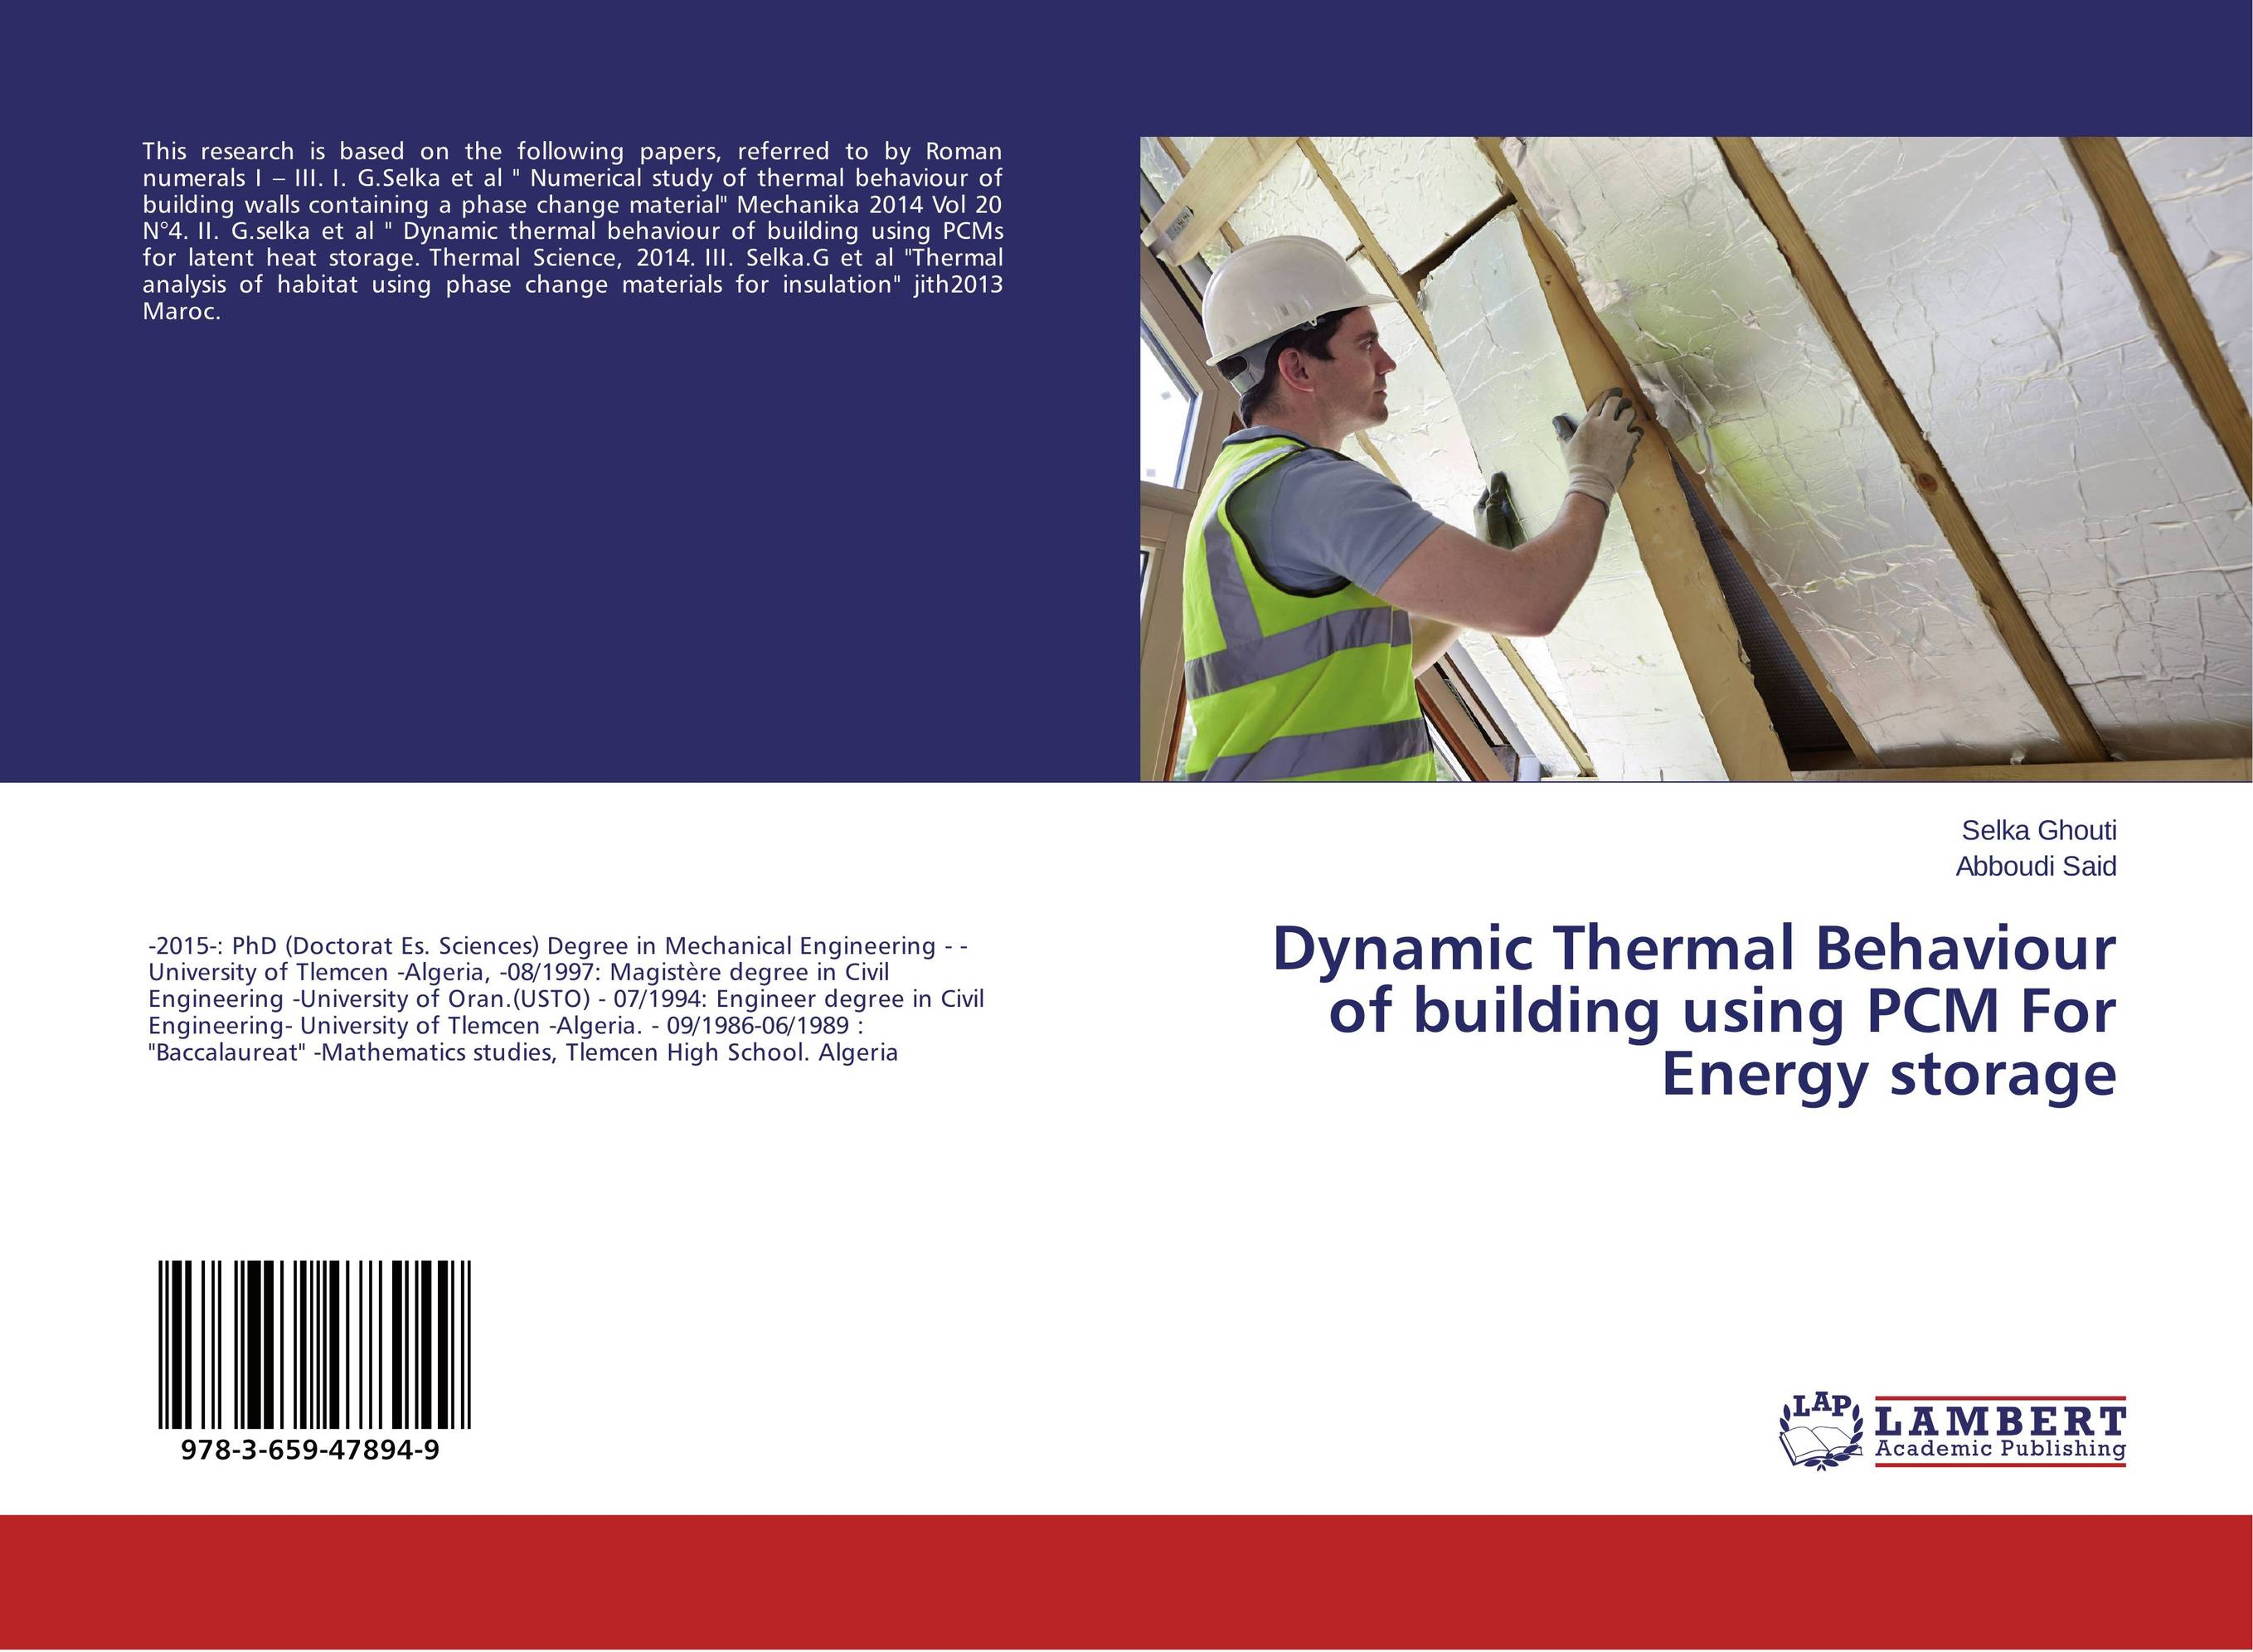 Dynamic Thermal Behaviour of building using PCM For Energy storage